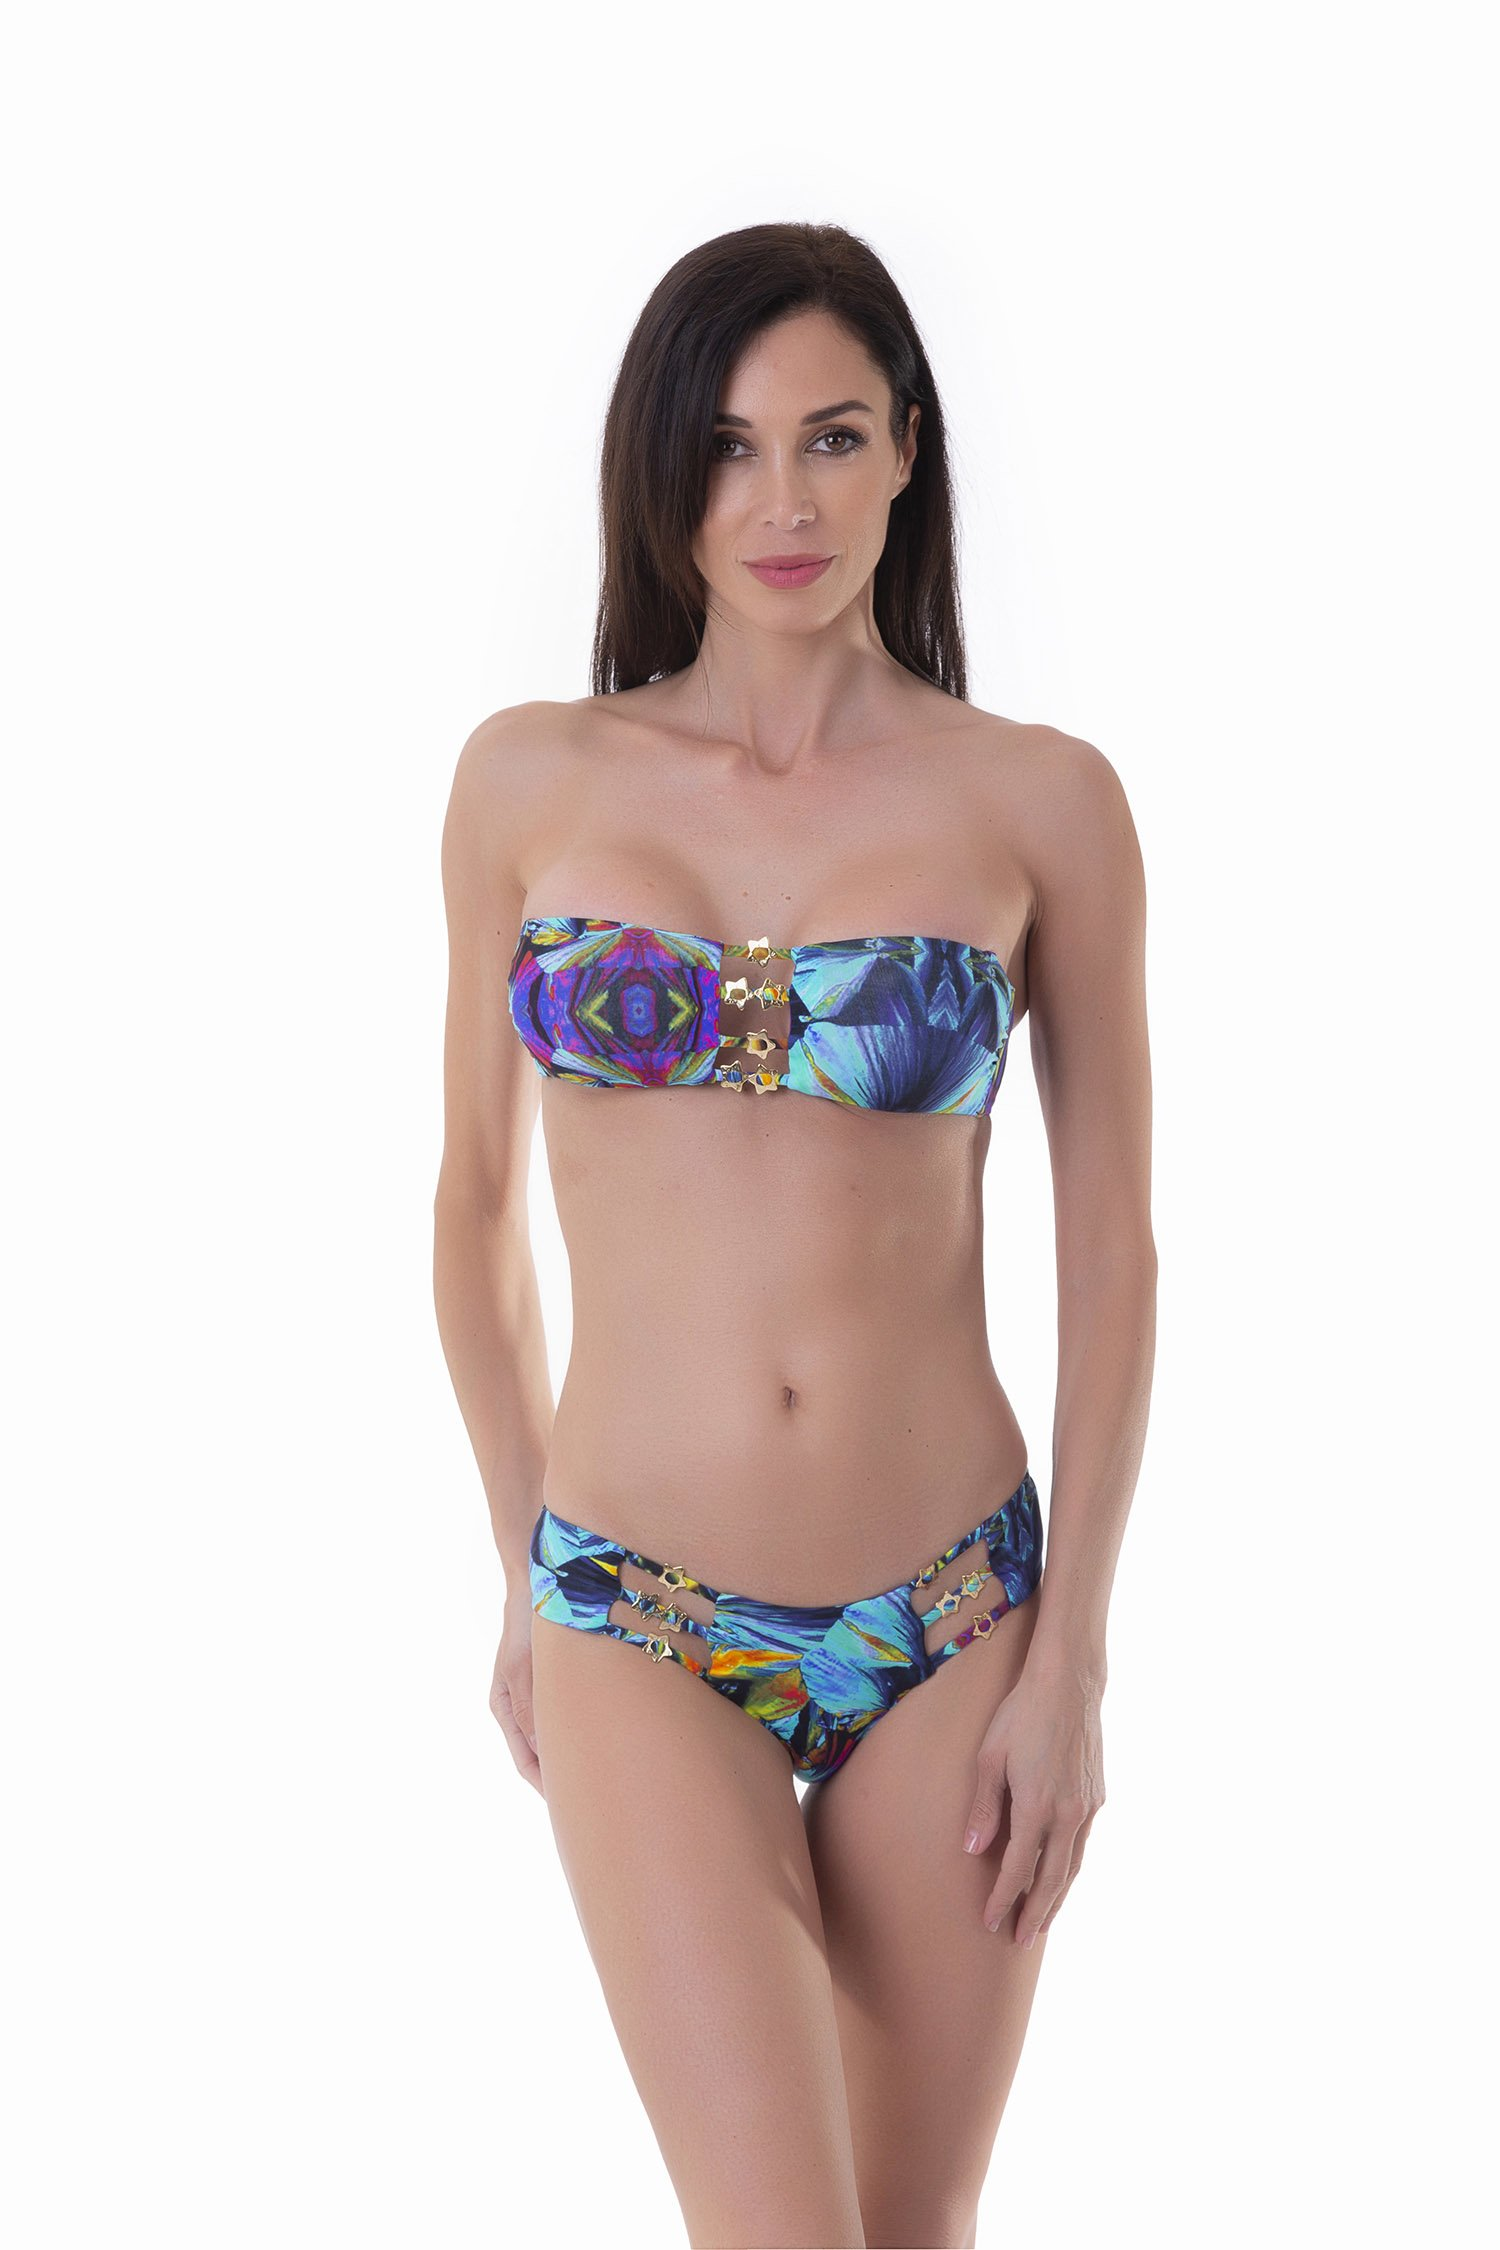 BANDEAU BIKINI STRINGS WITH STARS PRINTED - Blue Kaleidoscope